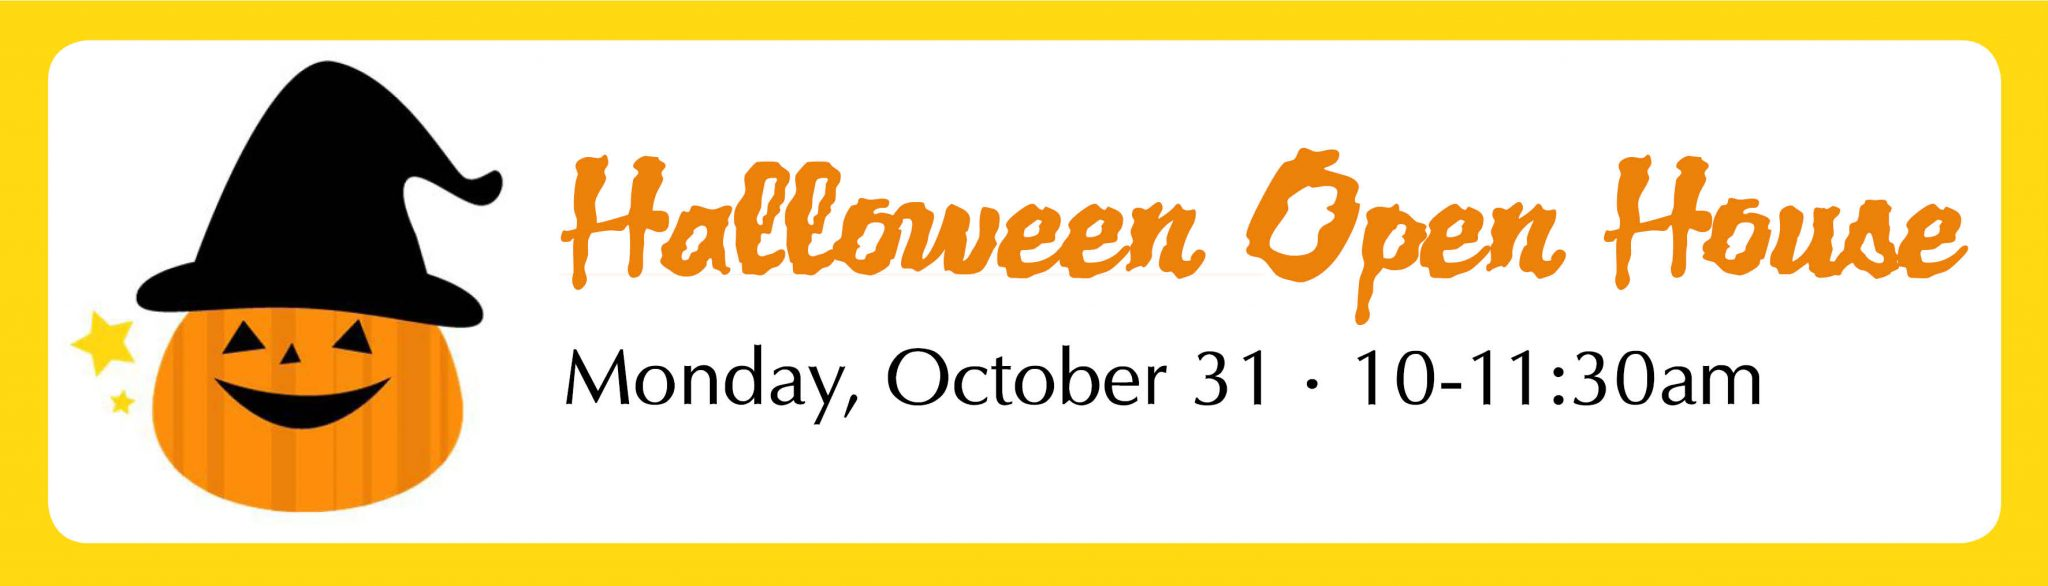 Preschool Halloween Events At Darlington Darlington Arts